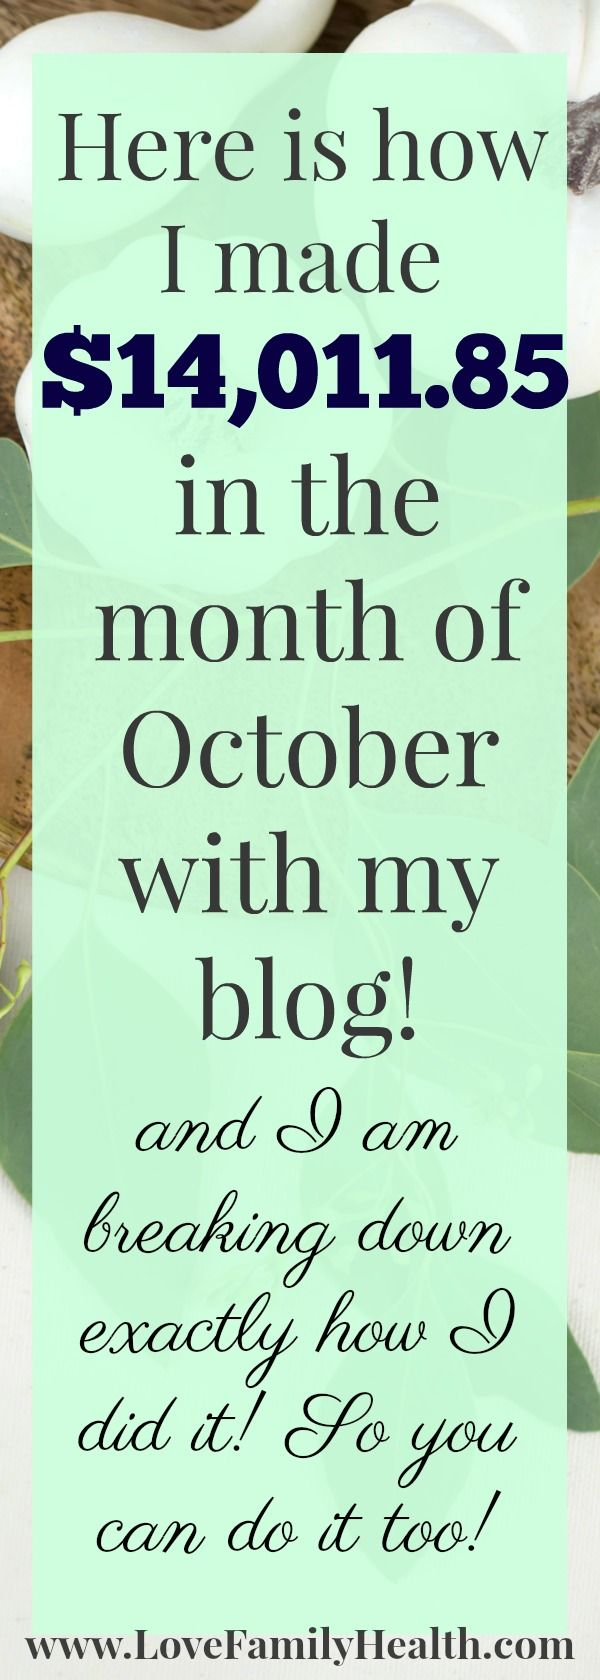 Here is how I made $14,011.85 in the month of October with my blog! - Love. Family. Health.